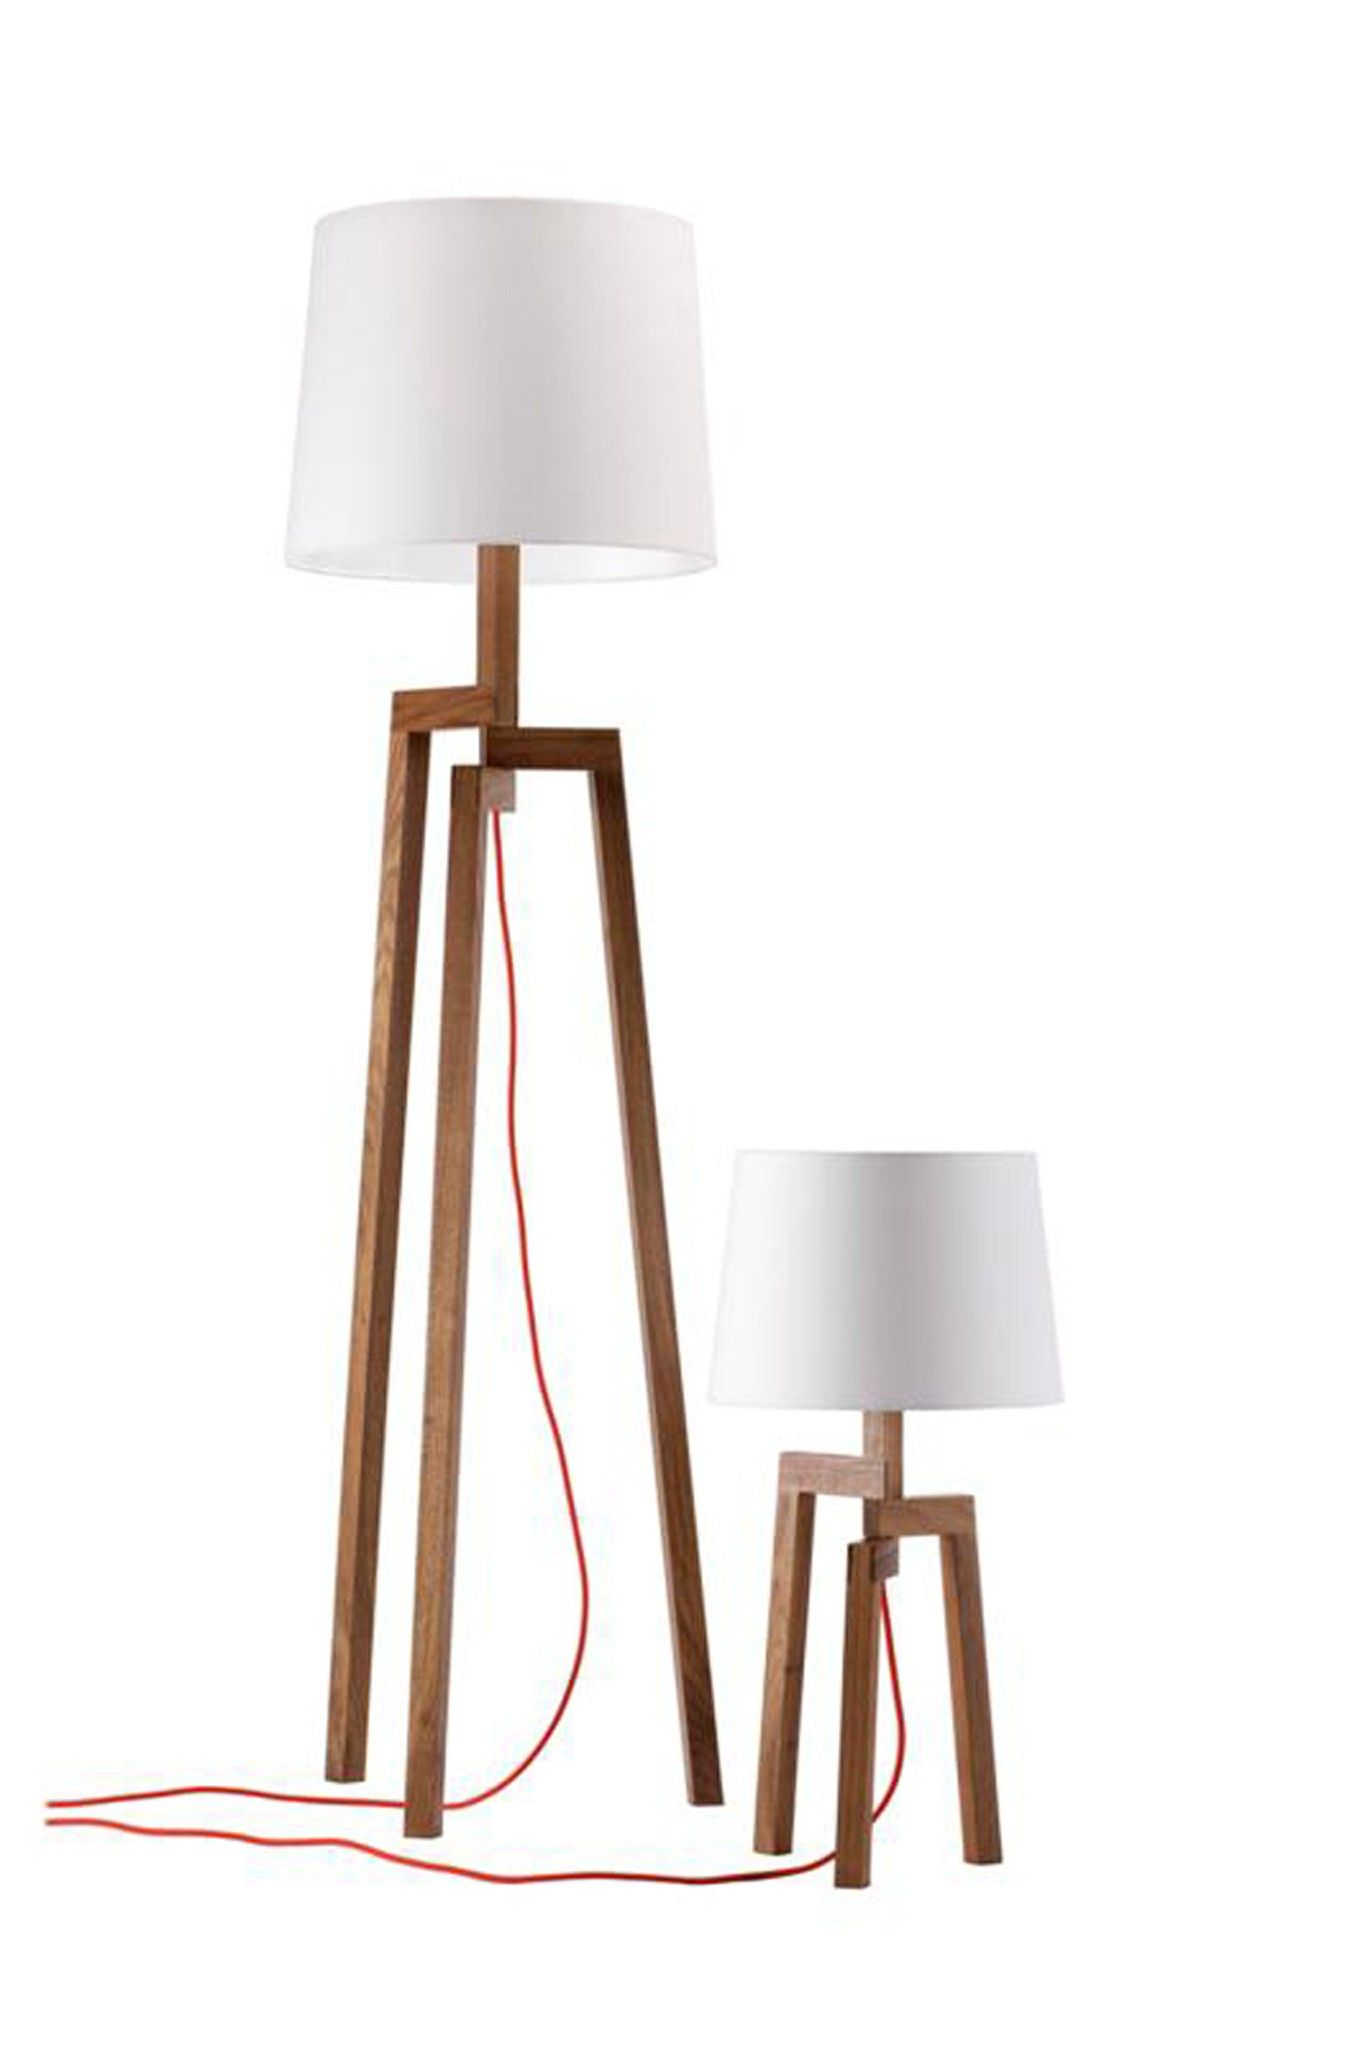 Stilt Floor Lamp In 2020 Modern Lamp Modern Floor Lamp Design Lamp Design